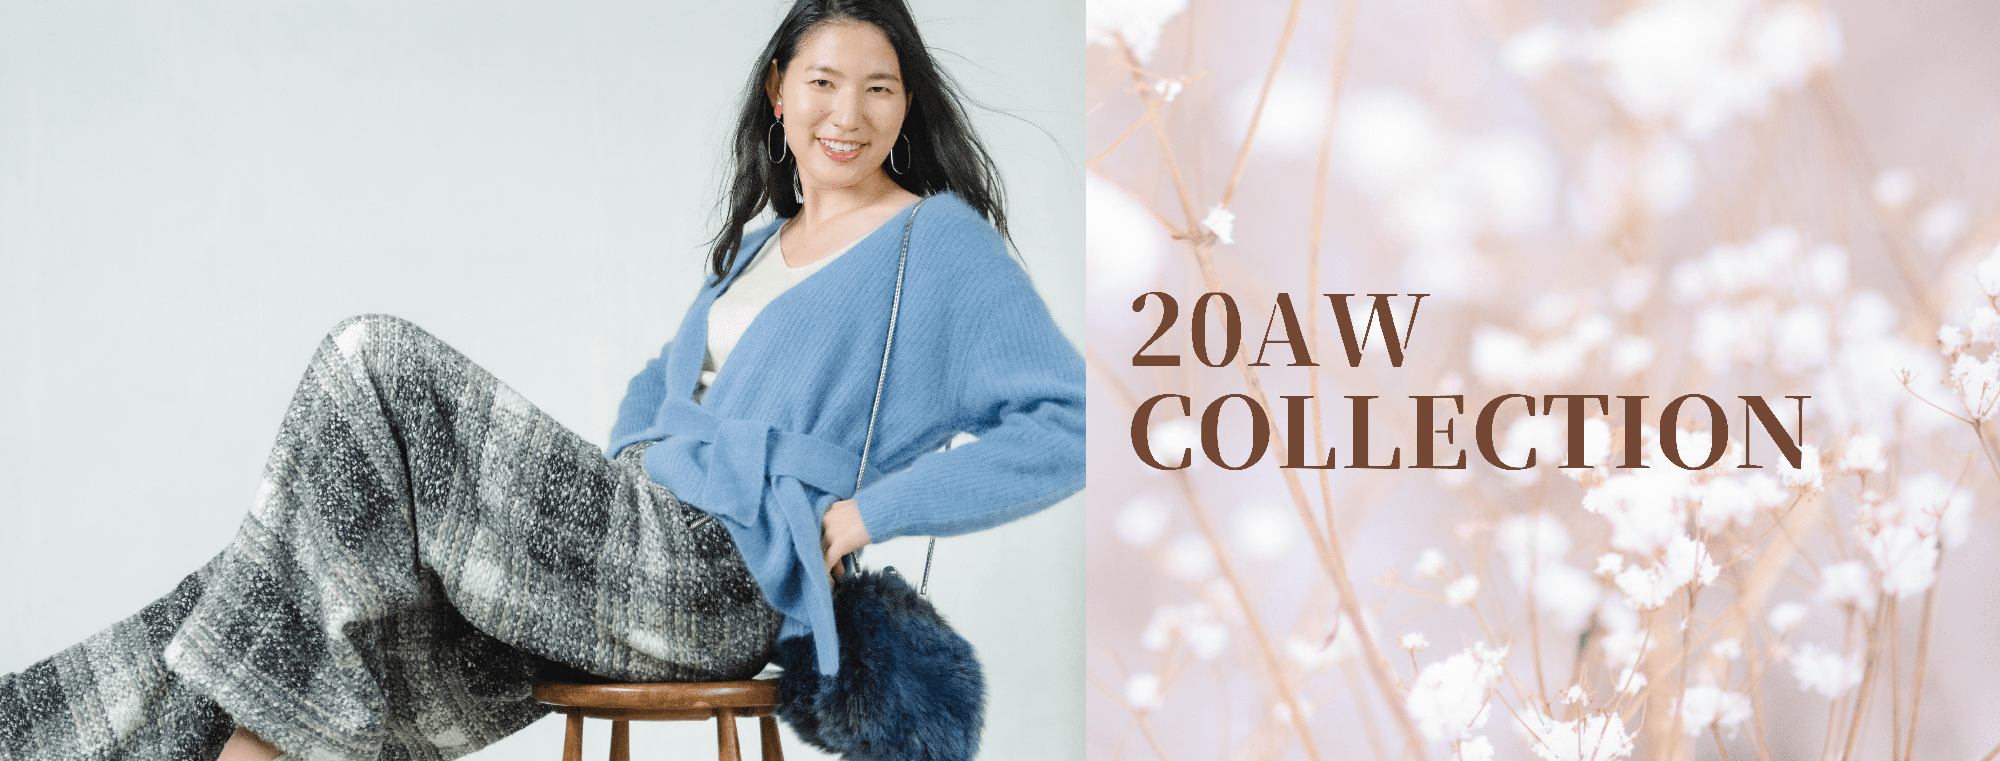 20AW Collection